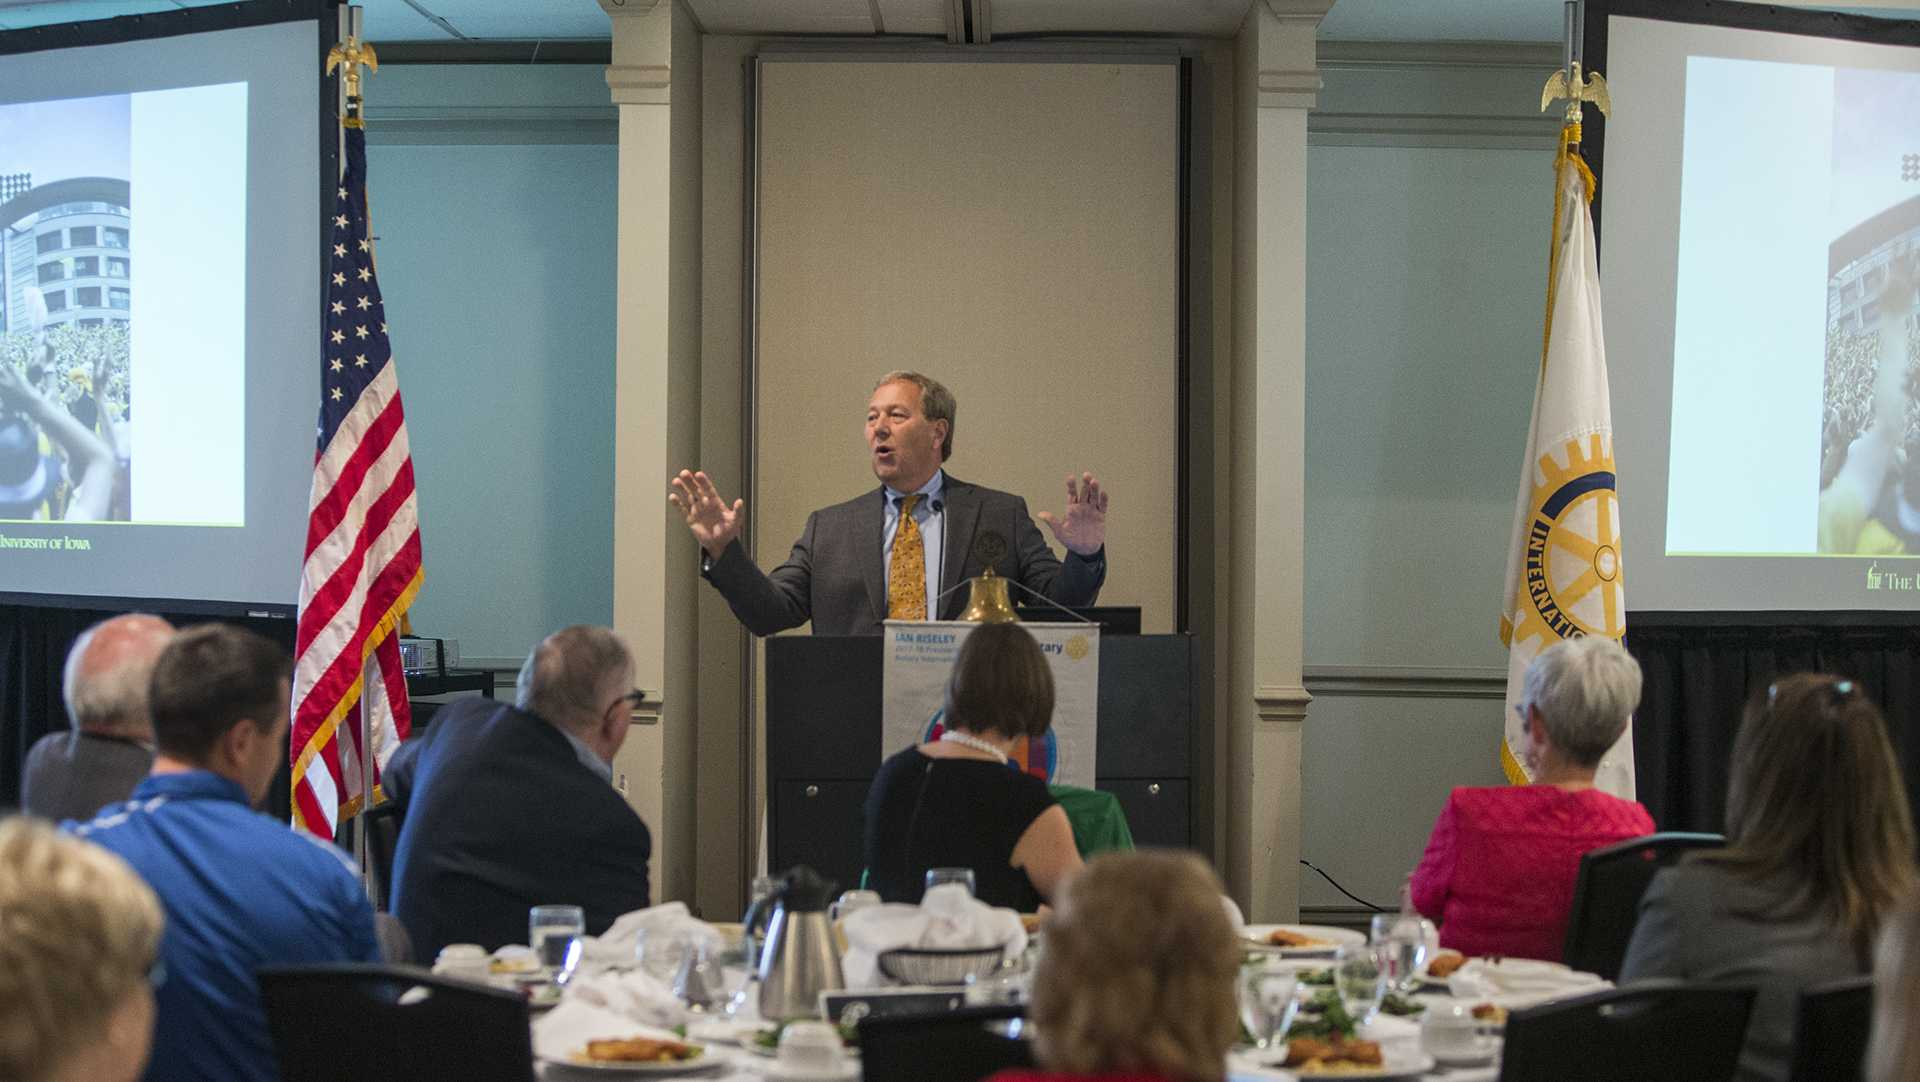 University of Iowa President Bruce Harreld delivers his State of the University Address at the University Club on Thursday, Oct. 5, 2017. Harreld spoke on issues pertaining to the rise in tuition rates for university students, state and national political conditions. He also discussed the culture of the UI, including the new Hawkeye Wave tradition. (Ben Smith/The Daily Iowan)